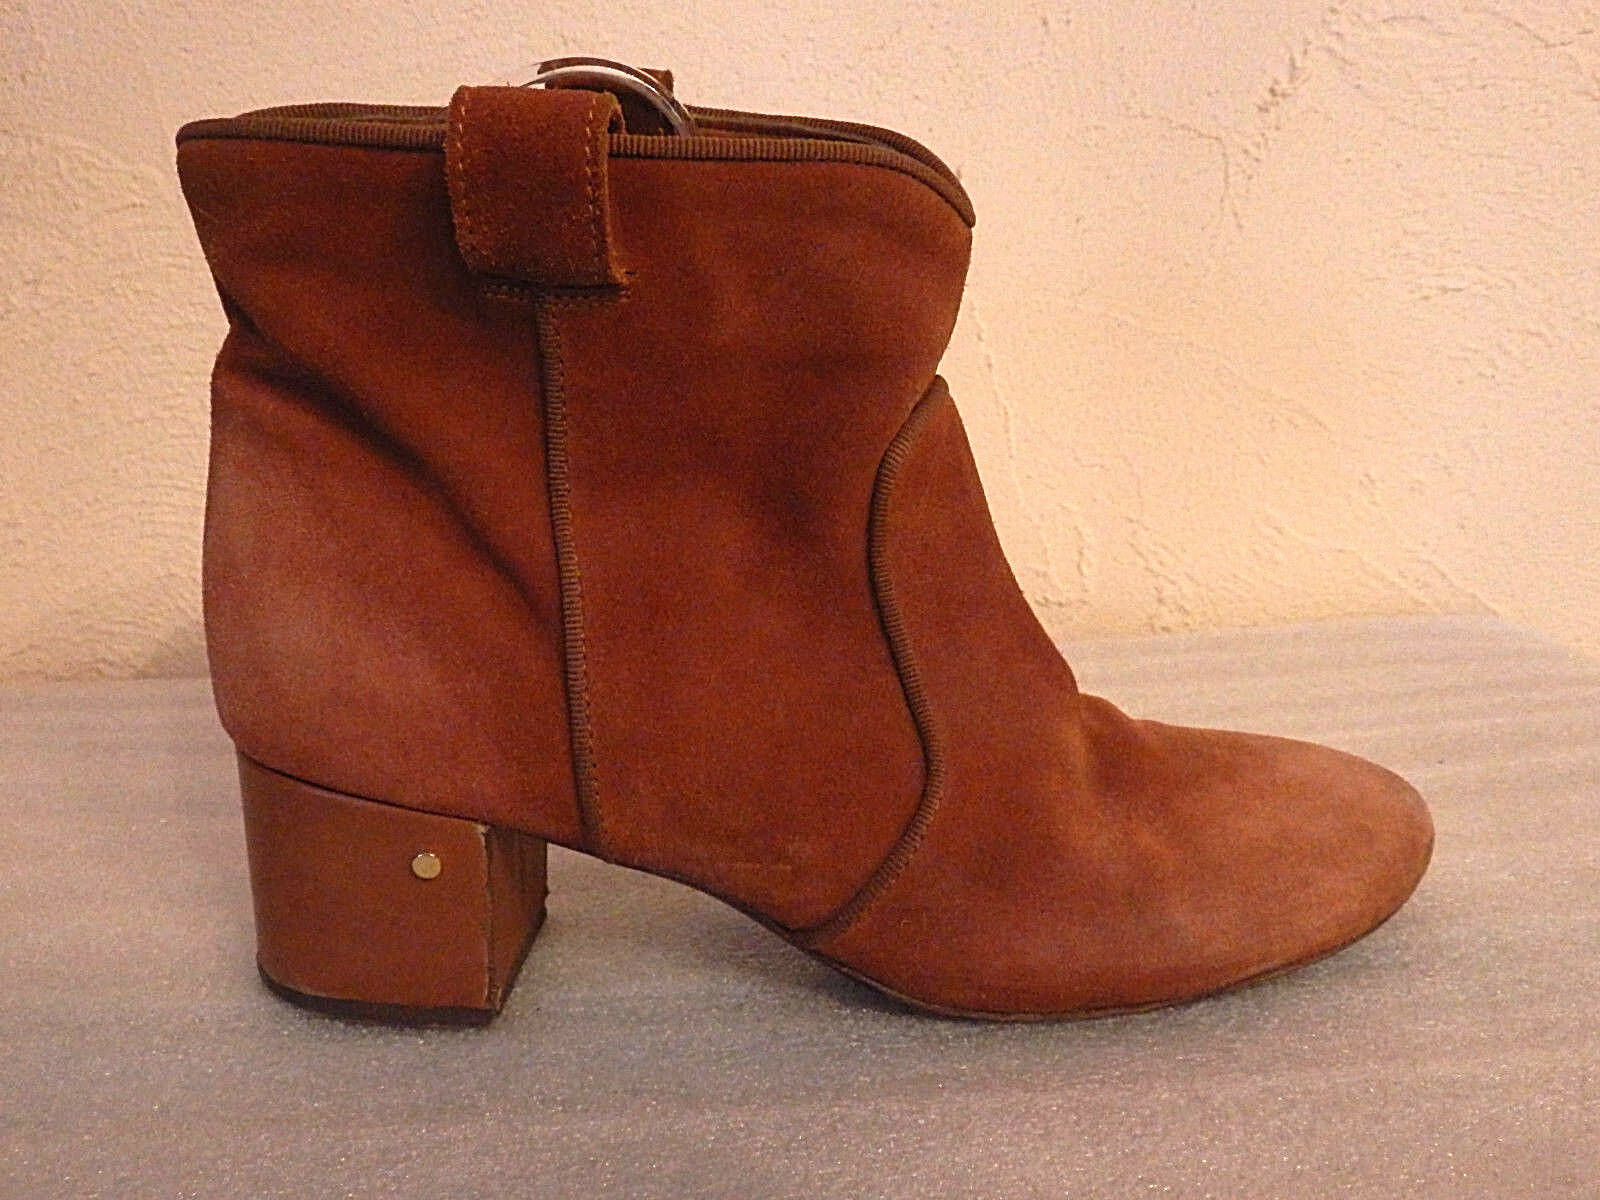 LAURENCE DACADE - BOOTS, BOOTS - SIZE 38 - AUTHENTIC